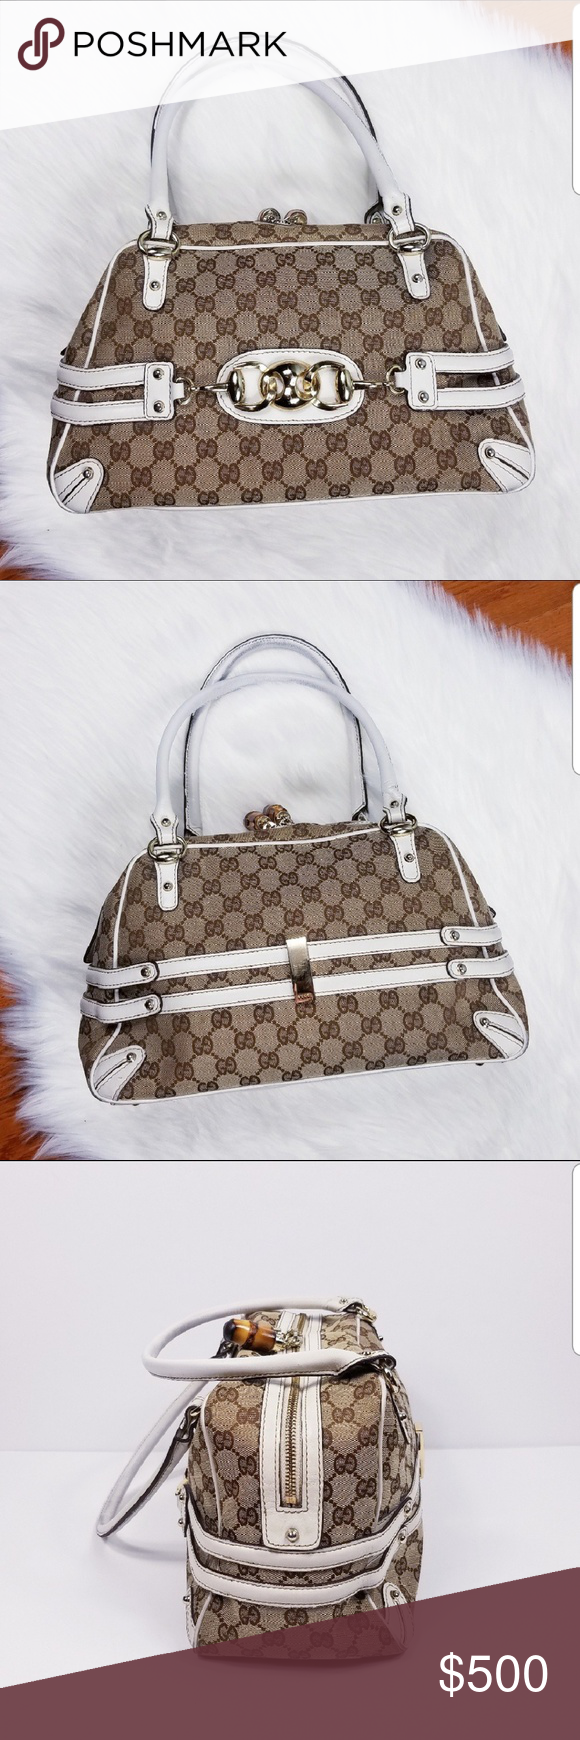 b1687f4764b Gucci guccissima wave boston bag Authentic tan and brown GG canvas gucci  wave boston bag Gold tone hardware Cream leather trim Rolled handles  Horsebit at ...